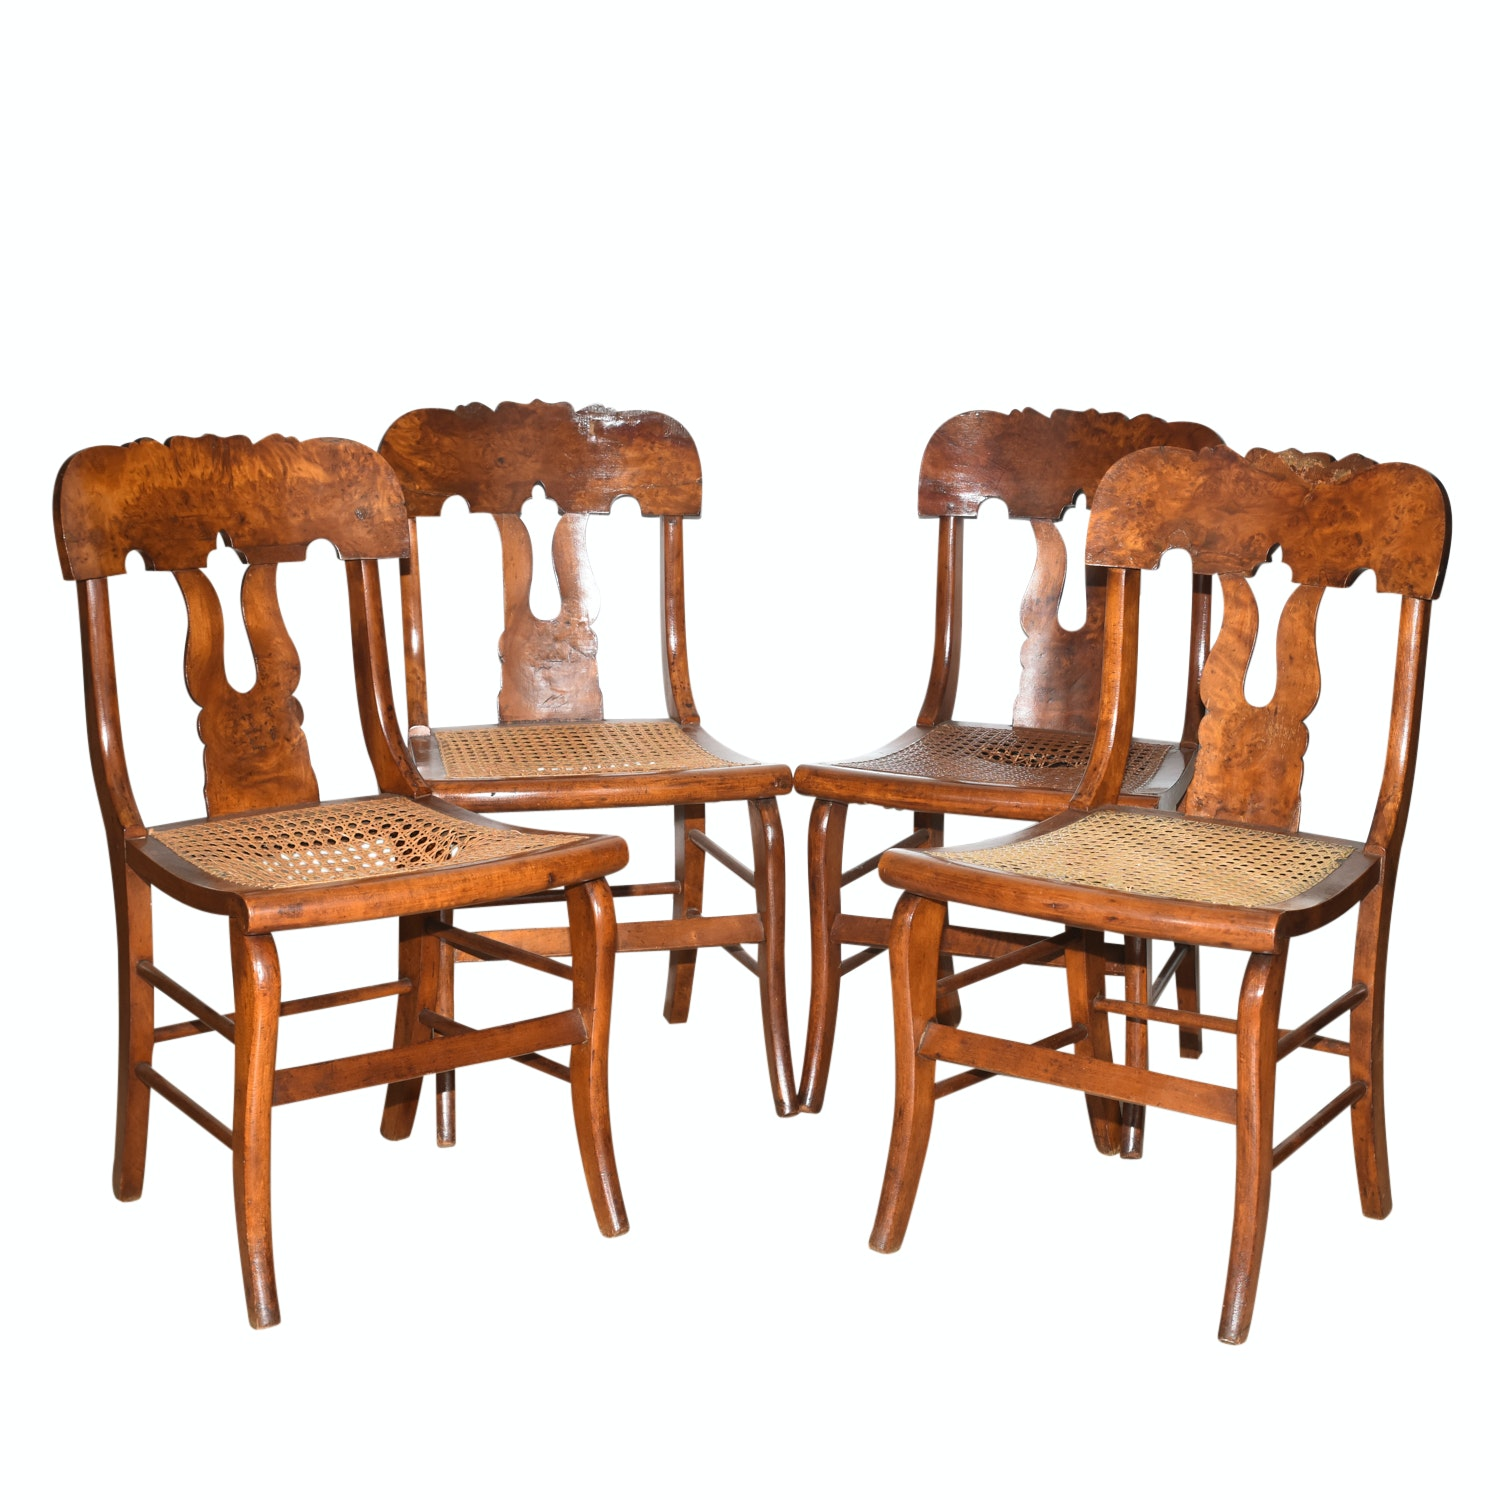 Four Antique Burl Veneer Caned Side Chairs